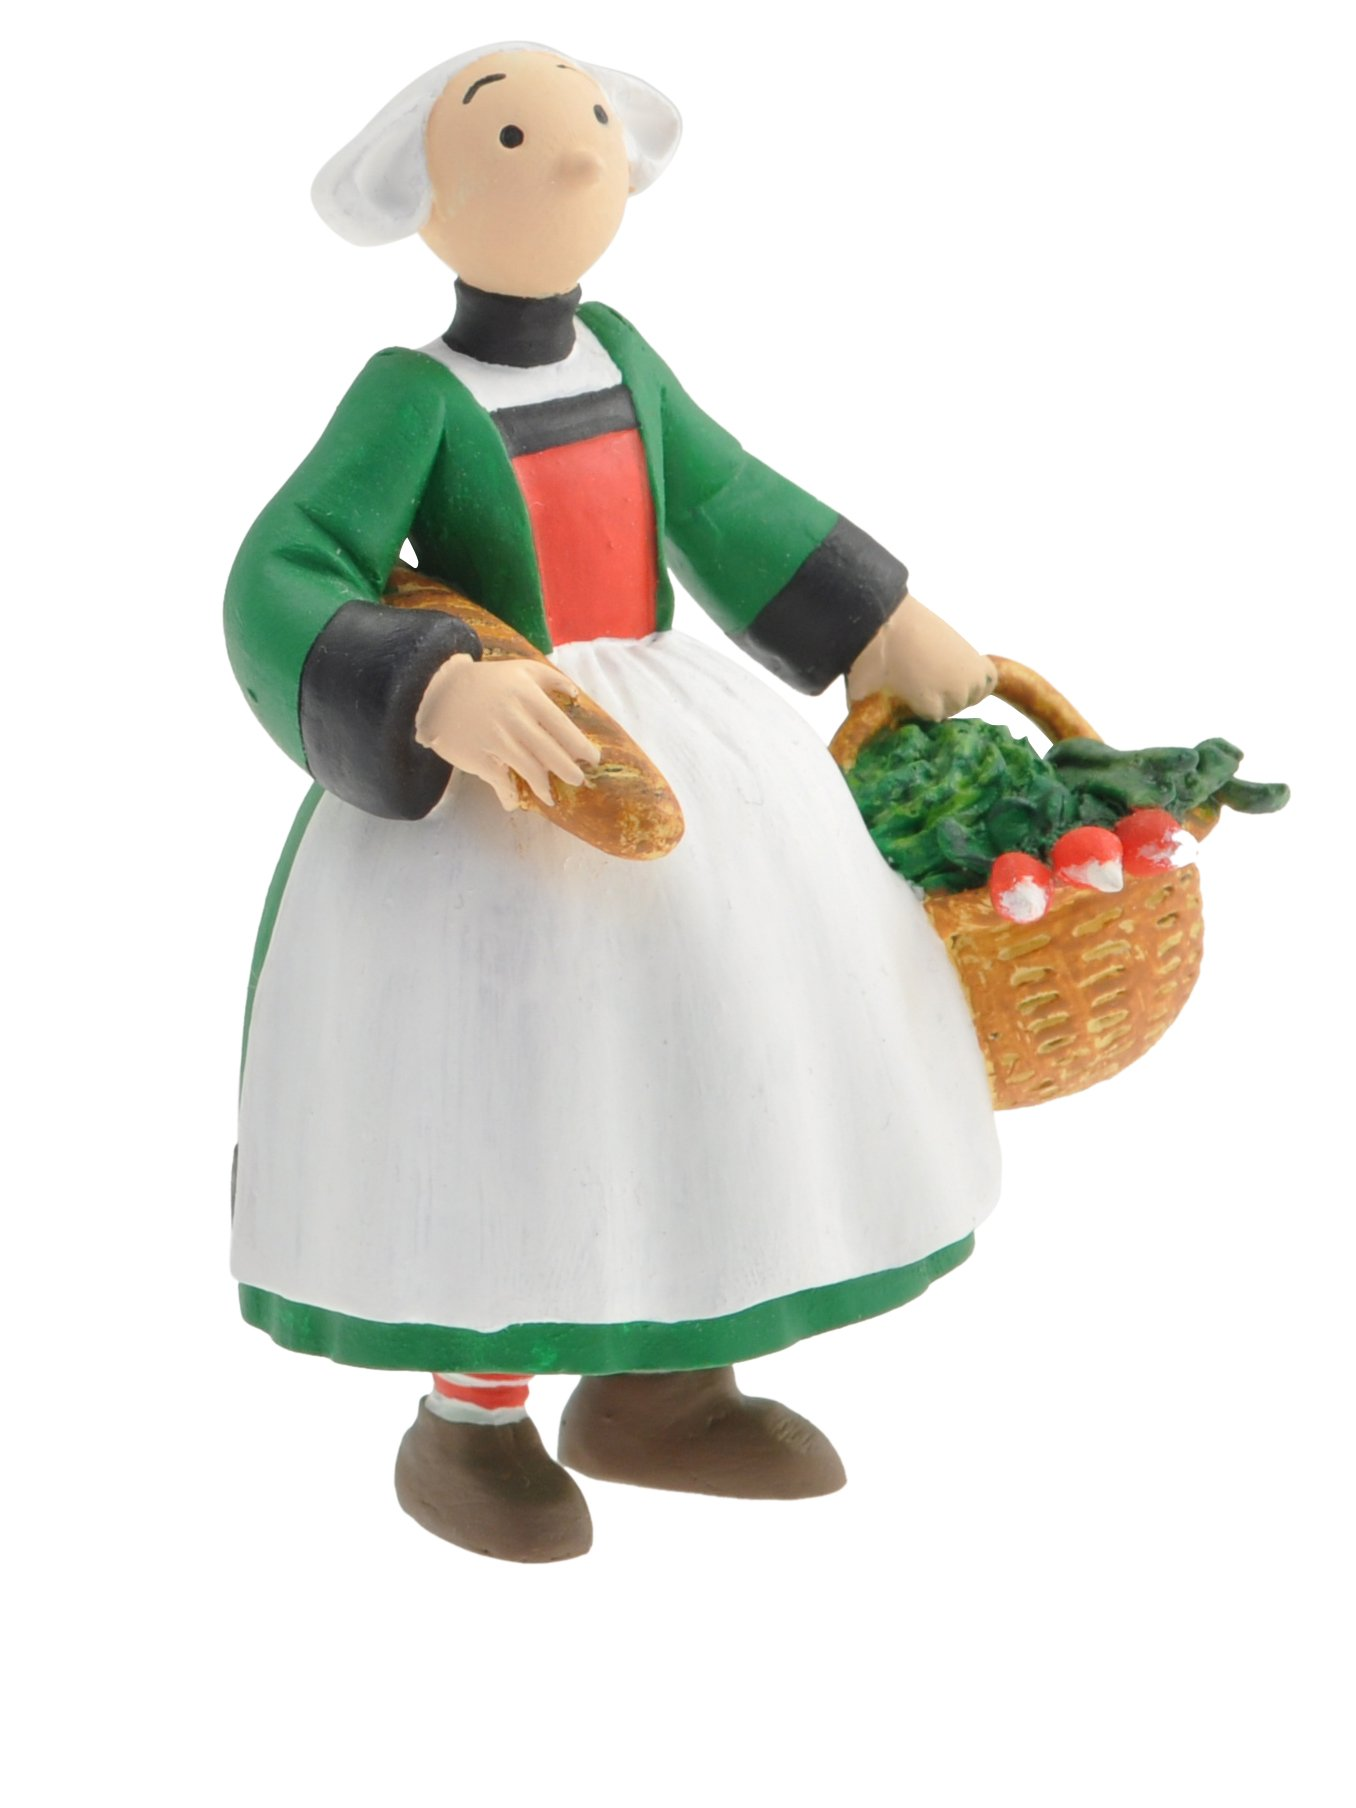 2014 Collectible Figurine Plastoy Bécassine back from the market 61022